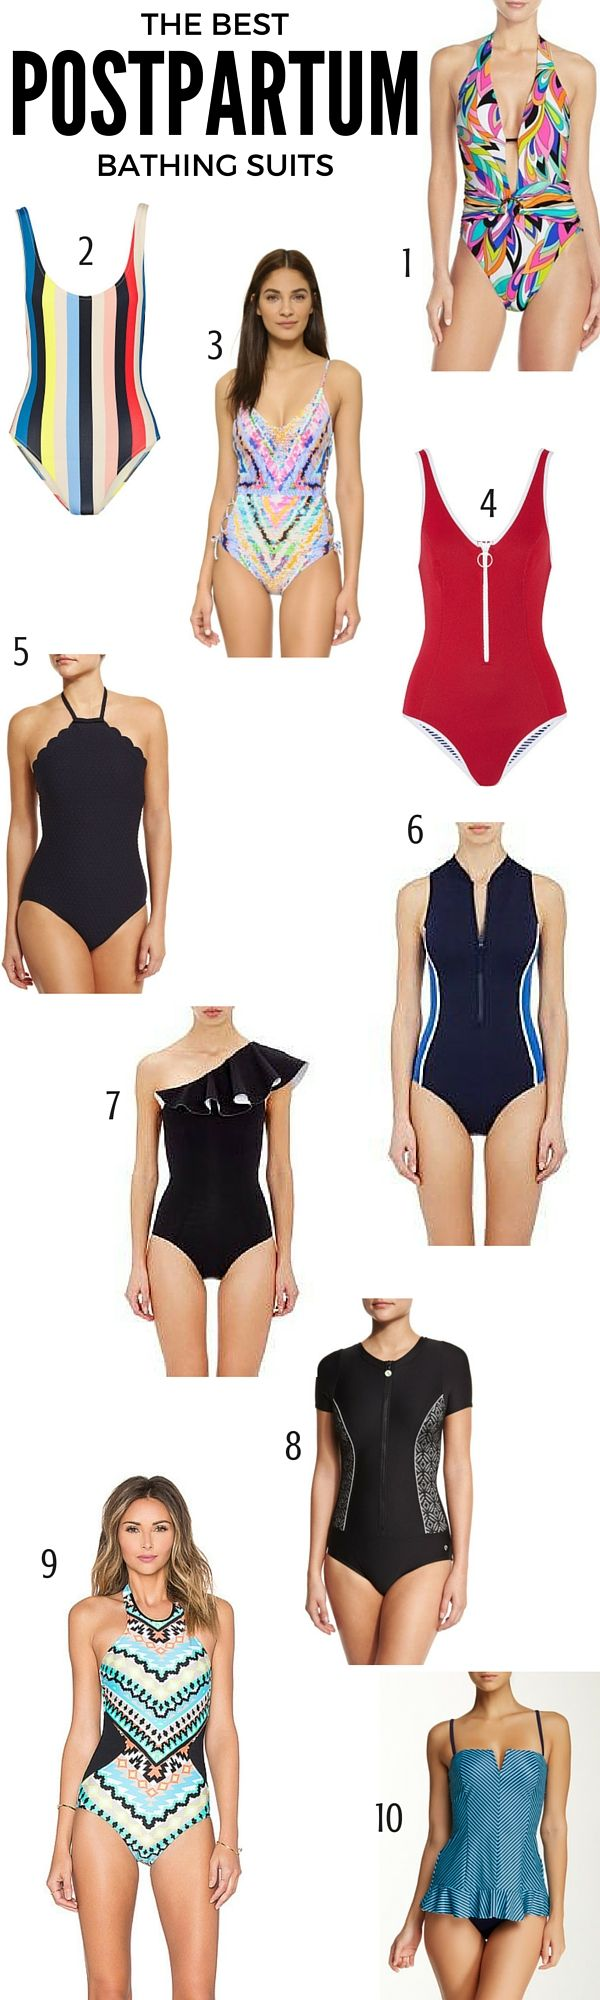 8178ba4d4affbd The 10 Best Postpartum Bathing Suits | Find out which brands made the cut  at blog.cuteheads.com